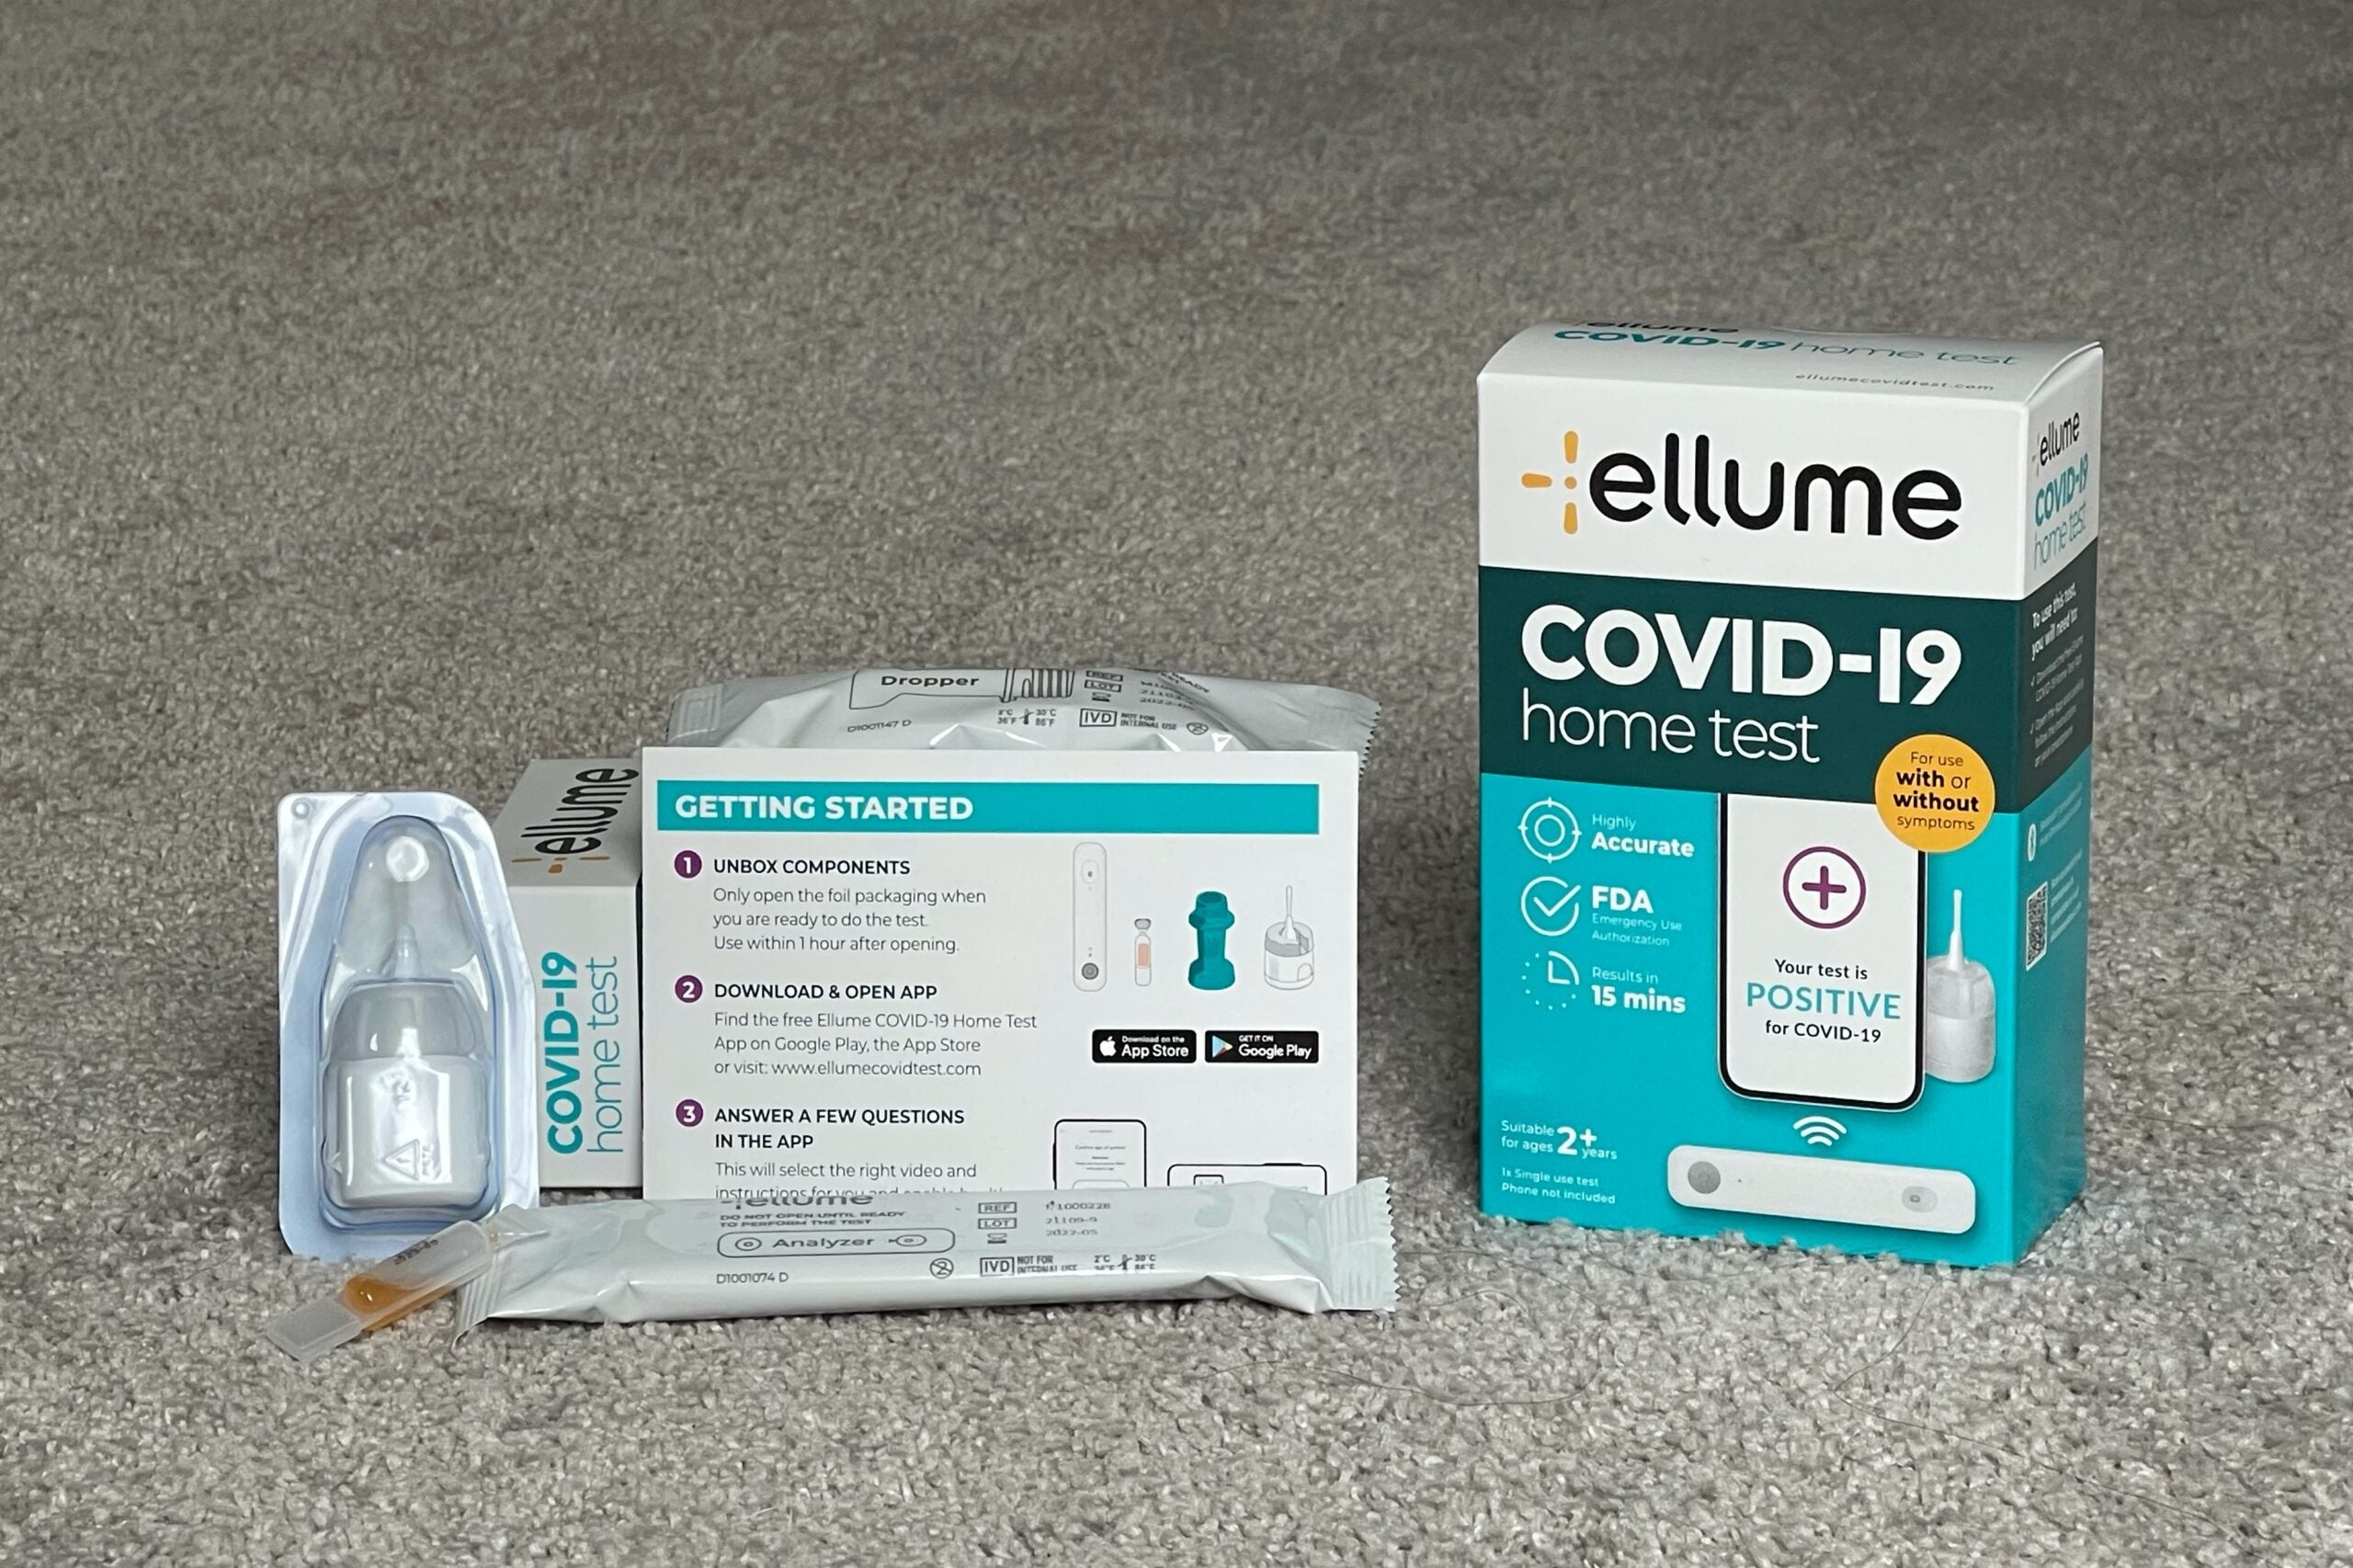 What it's like to use Ellume's $50 home test approved for travel to the United States